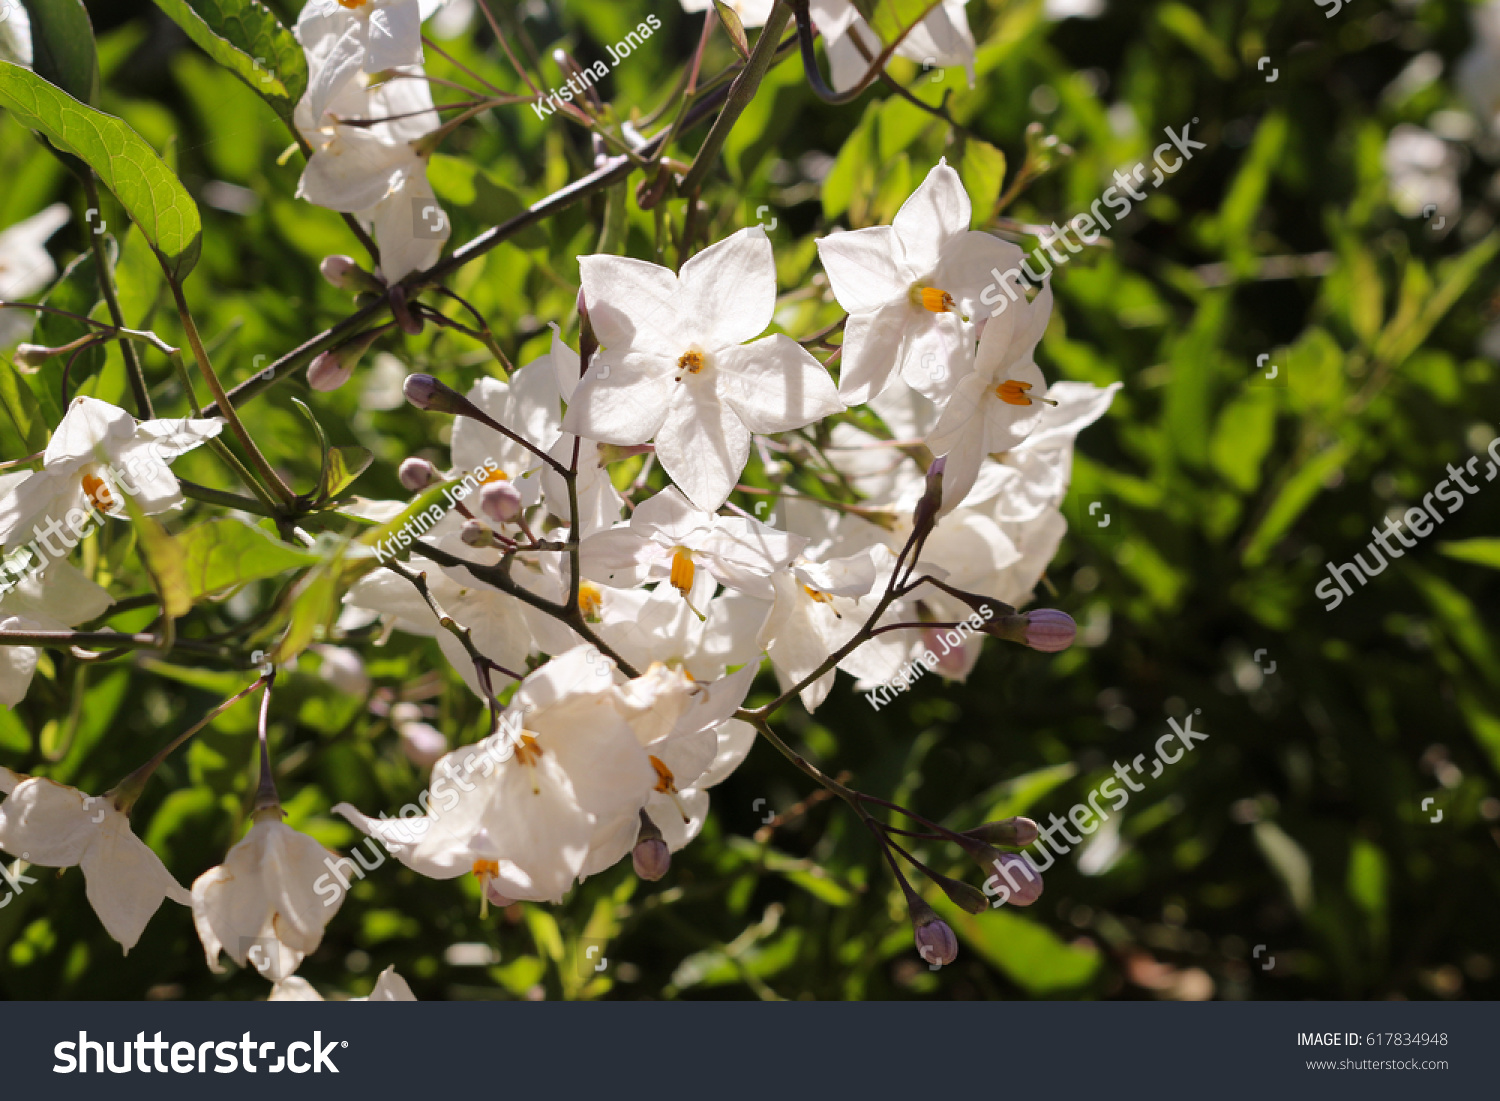 Twig Of Apple Tree With Large Pink White Flowers And Gentle Leaves